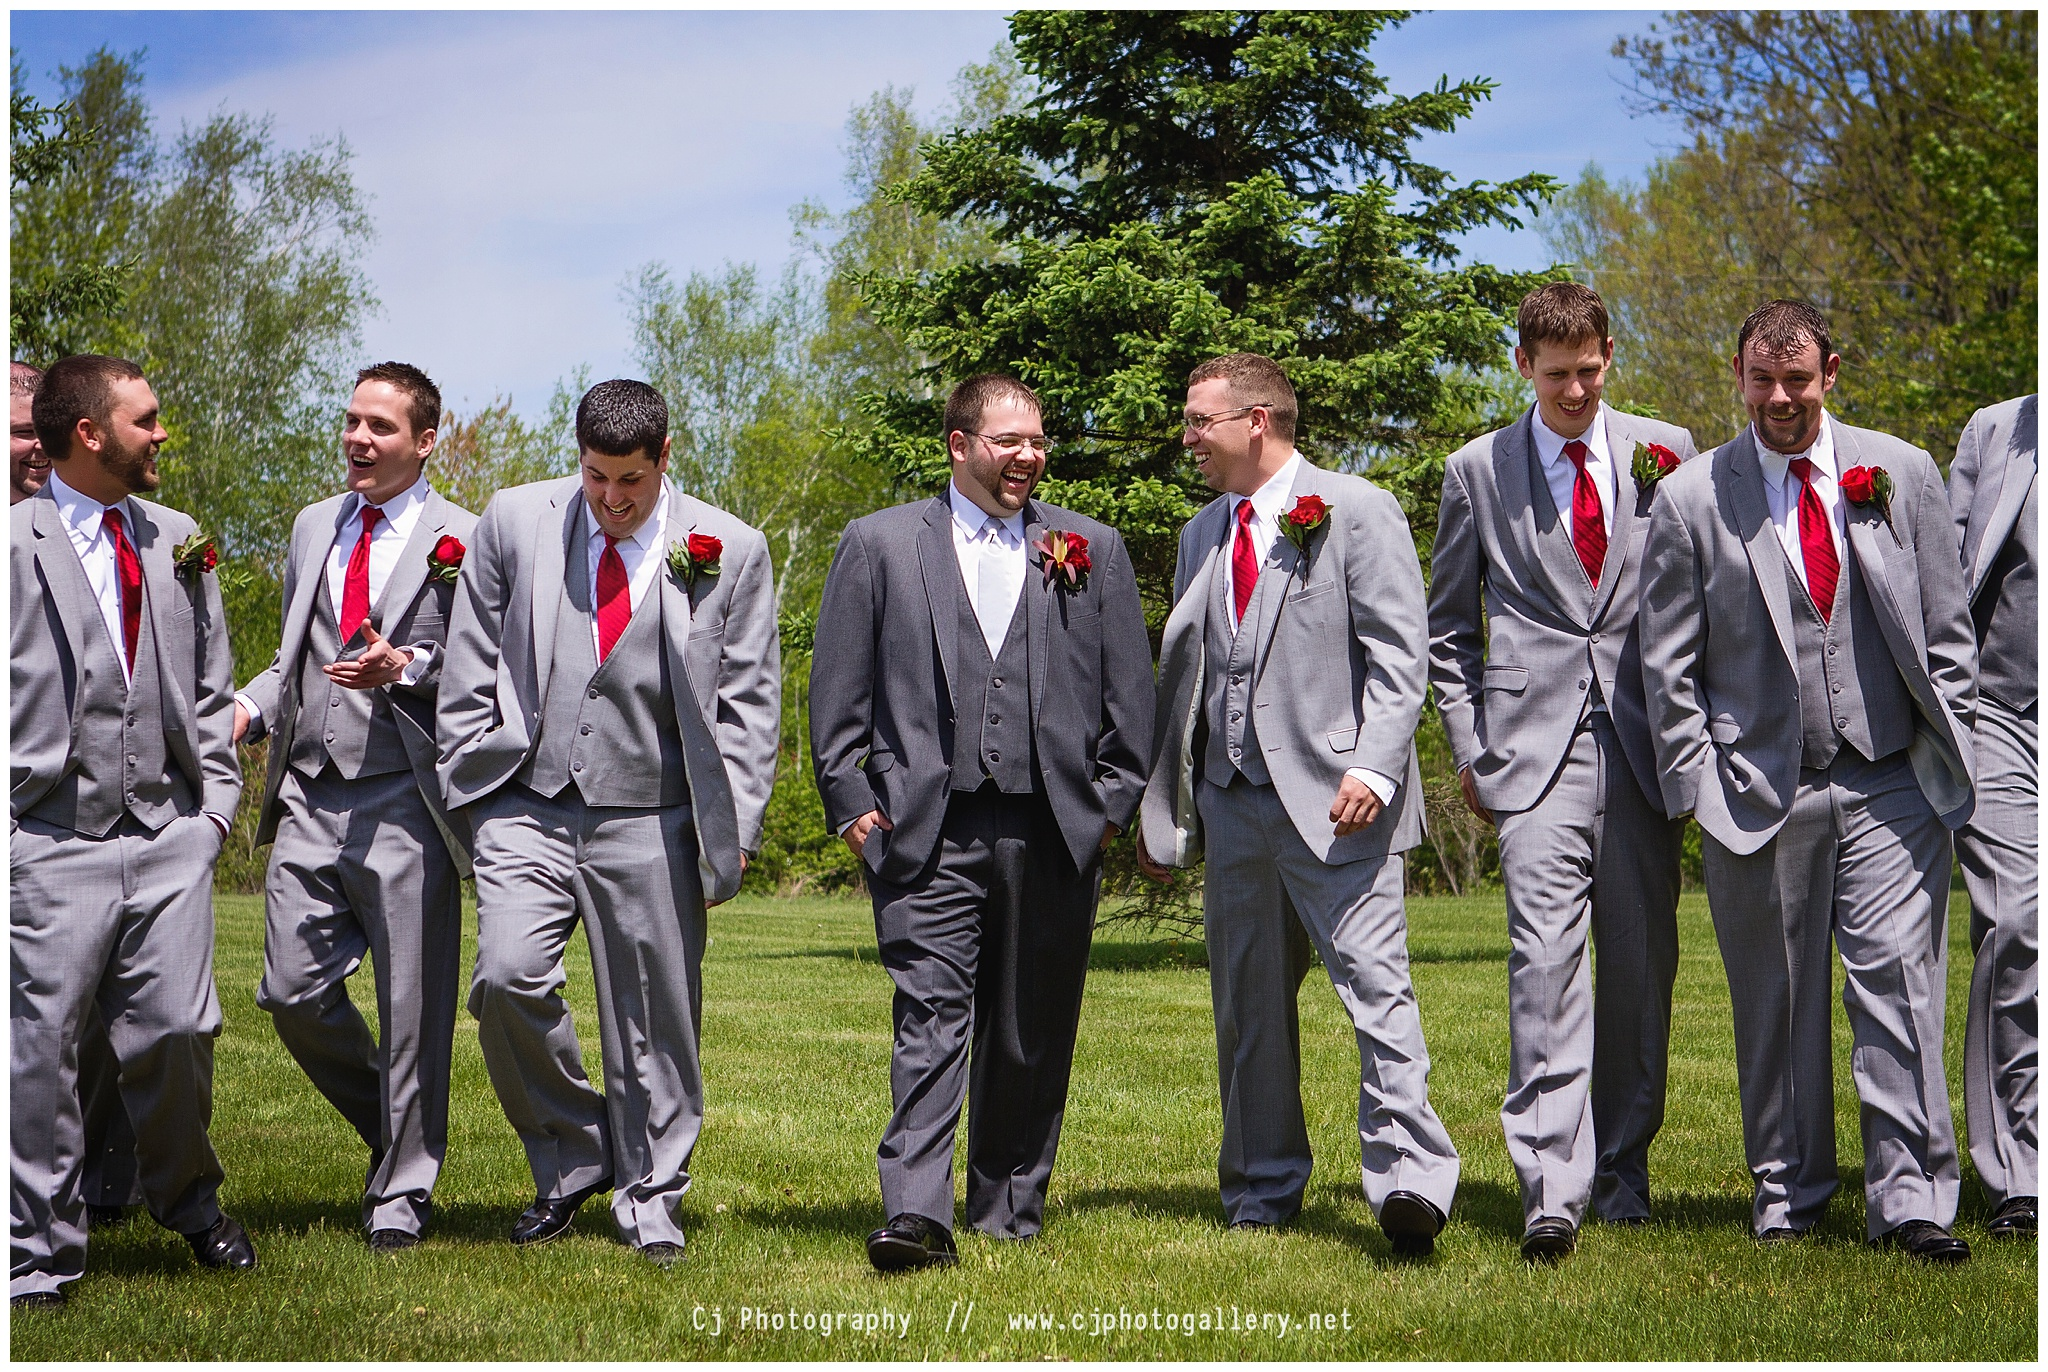 Cj_Photography-Wisconsin_Photographers